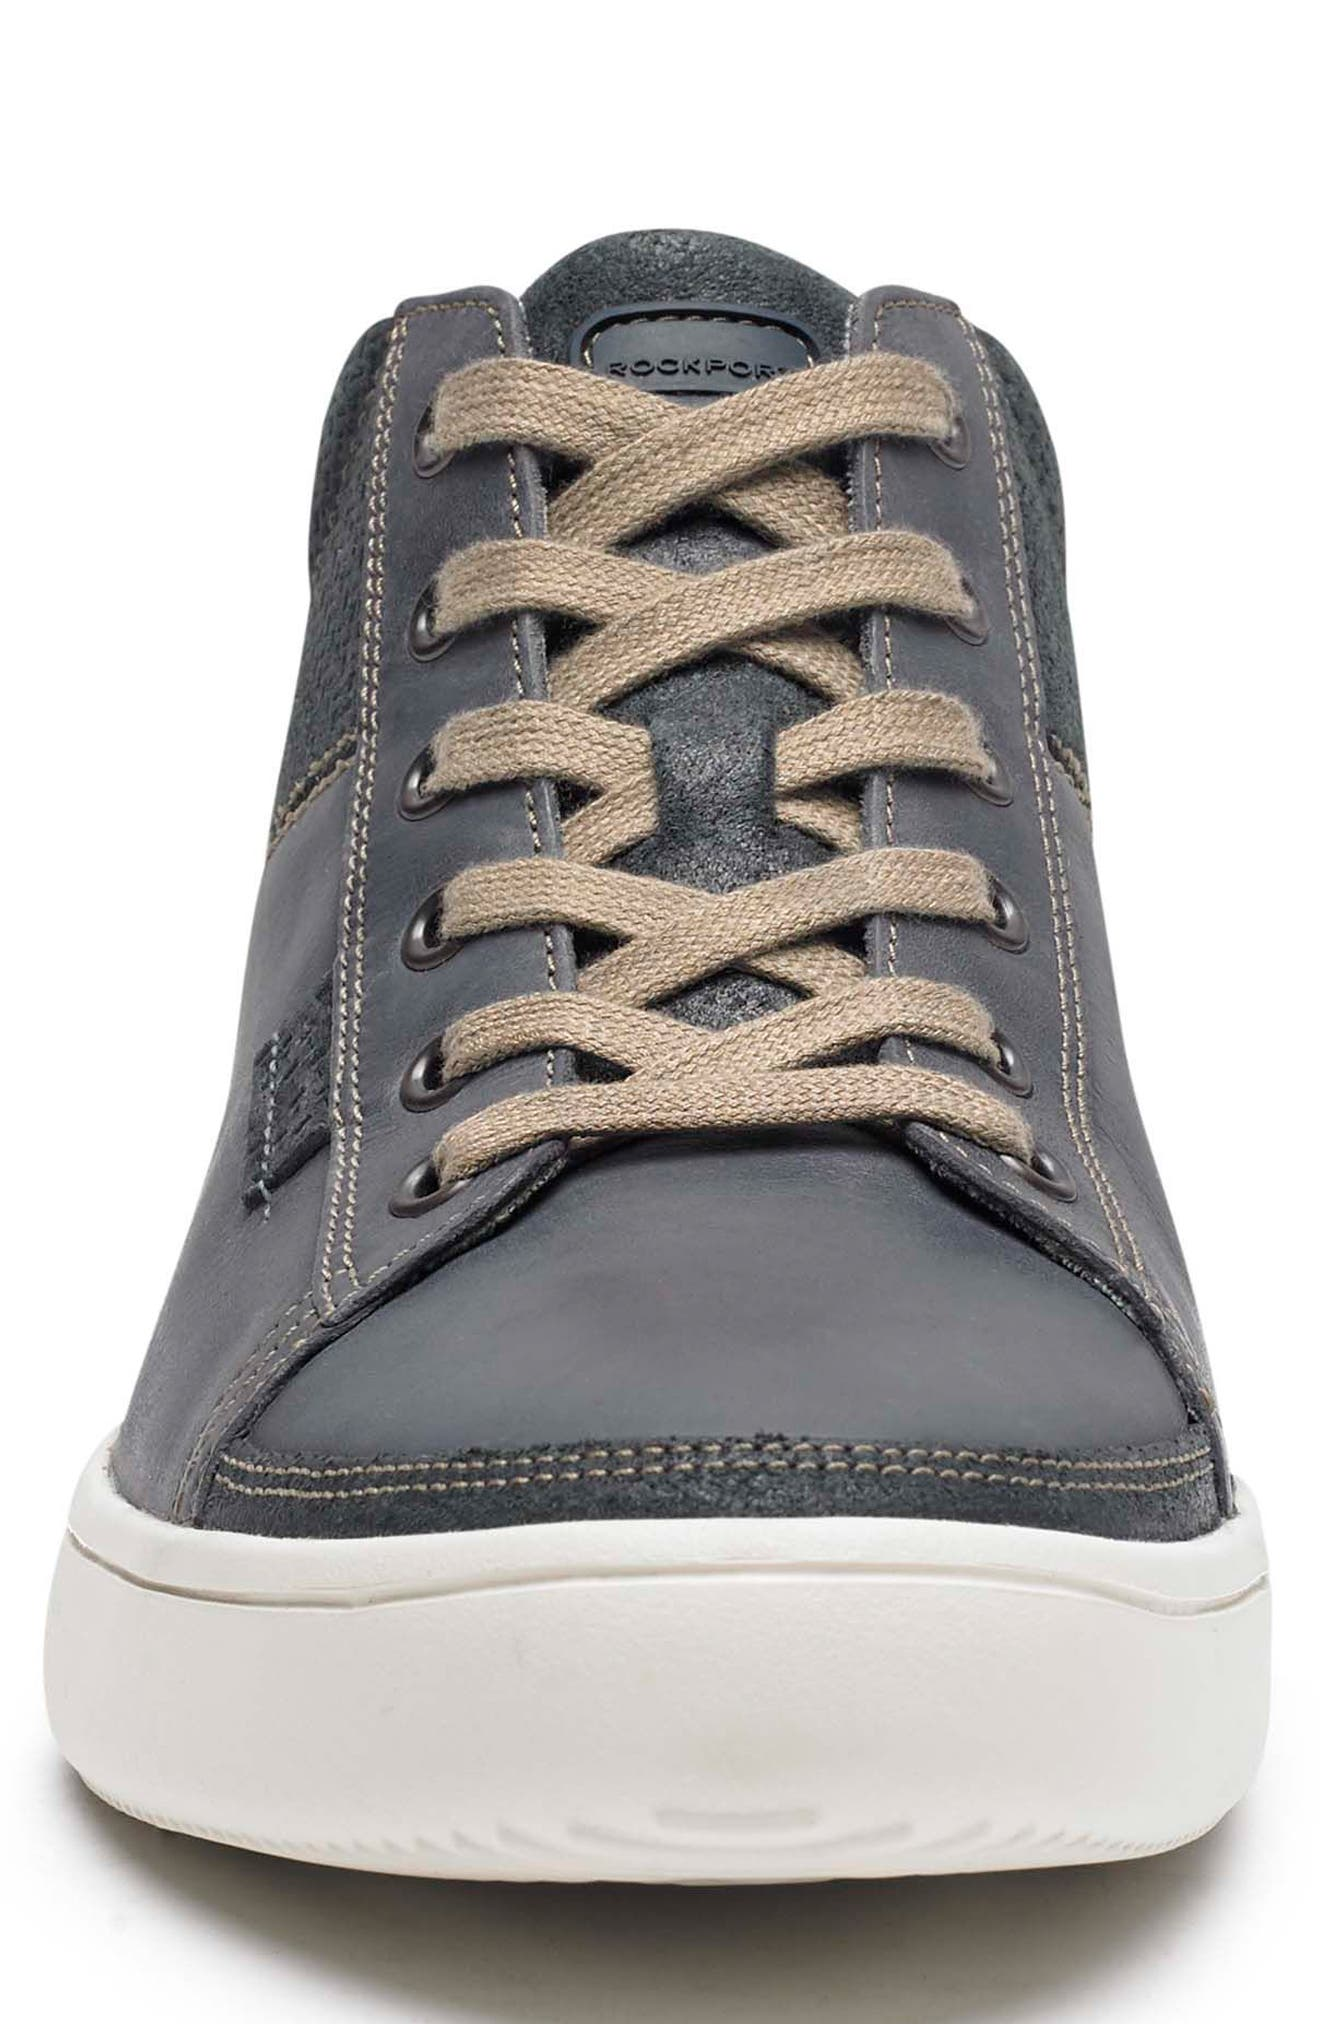 Colle Sneaker,                             Alternate thumbnail 4, color,                             BLUE/ GREY LEATHER